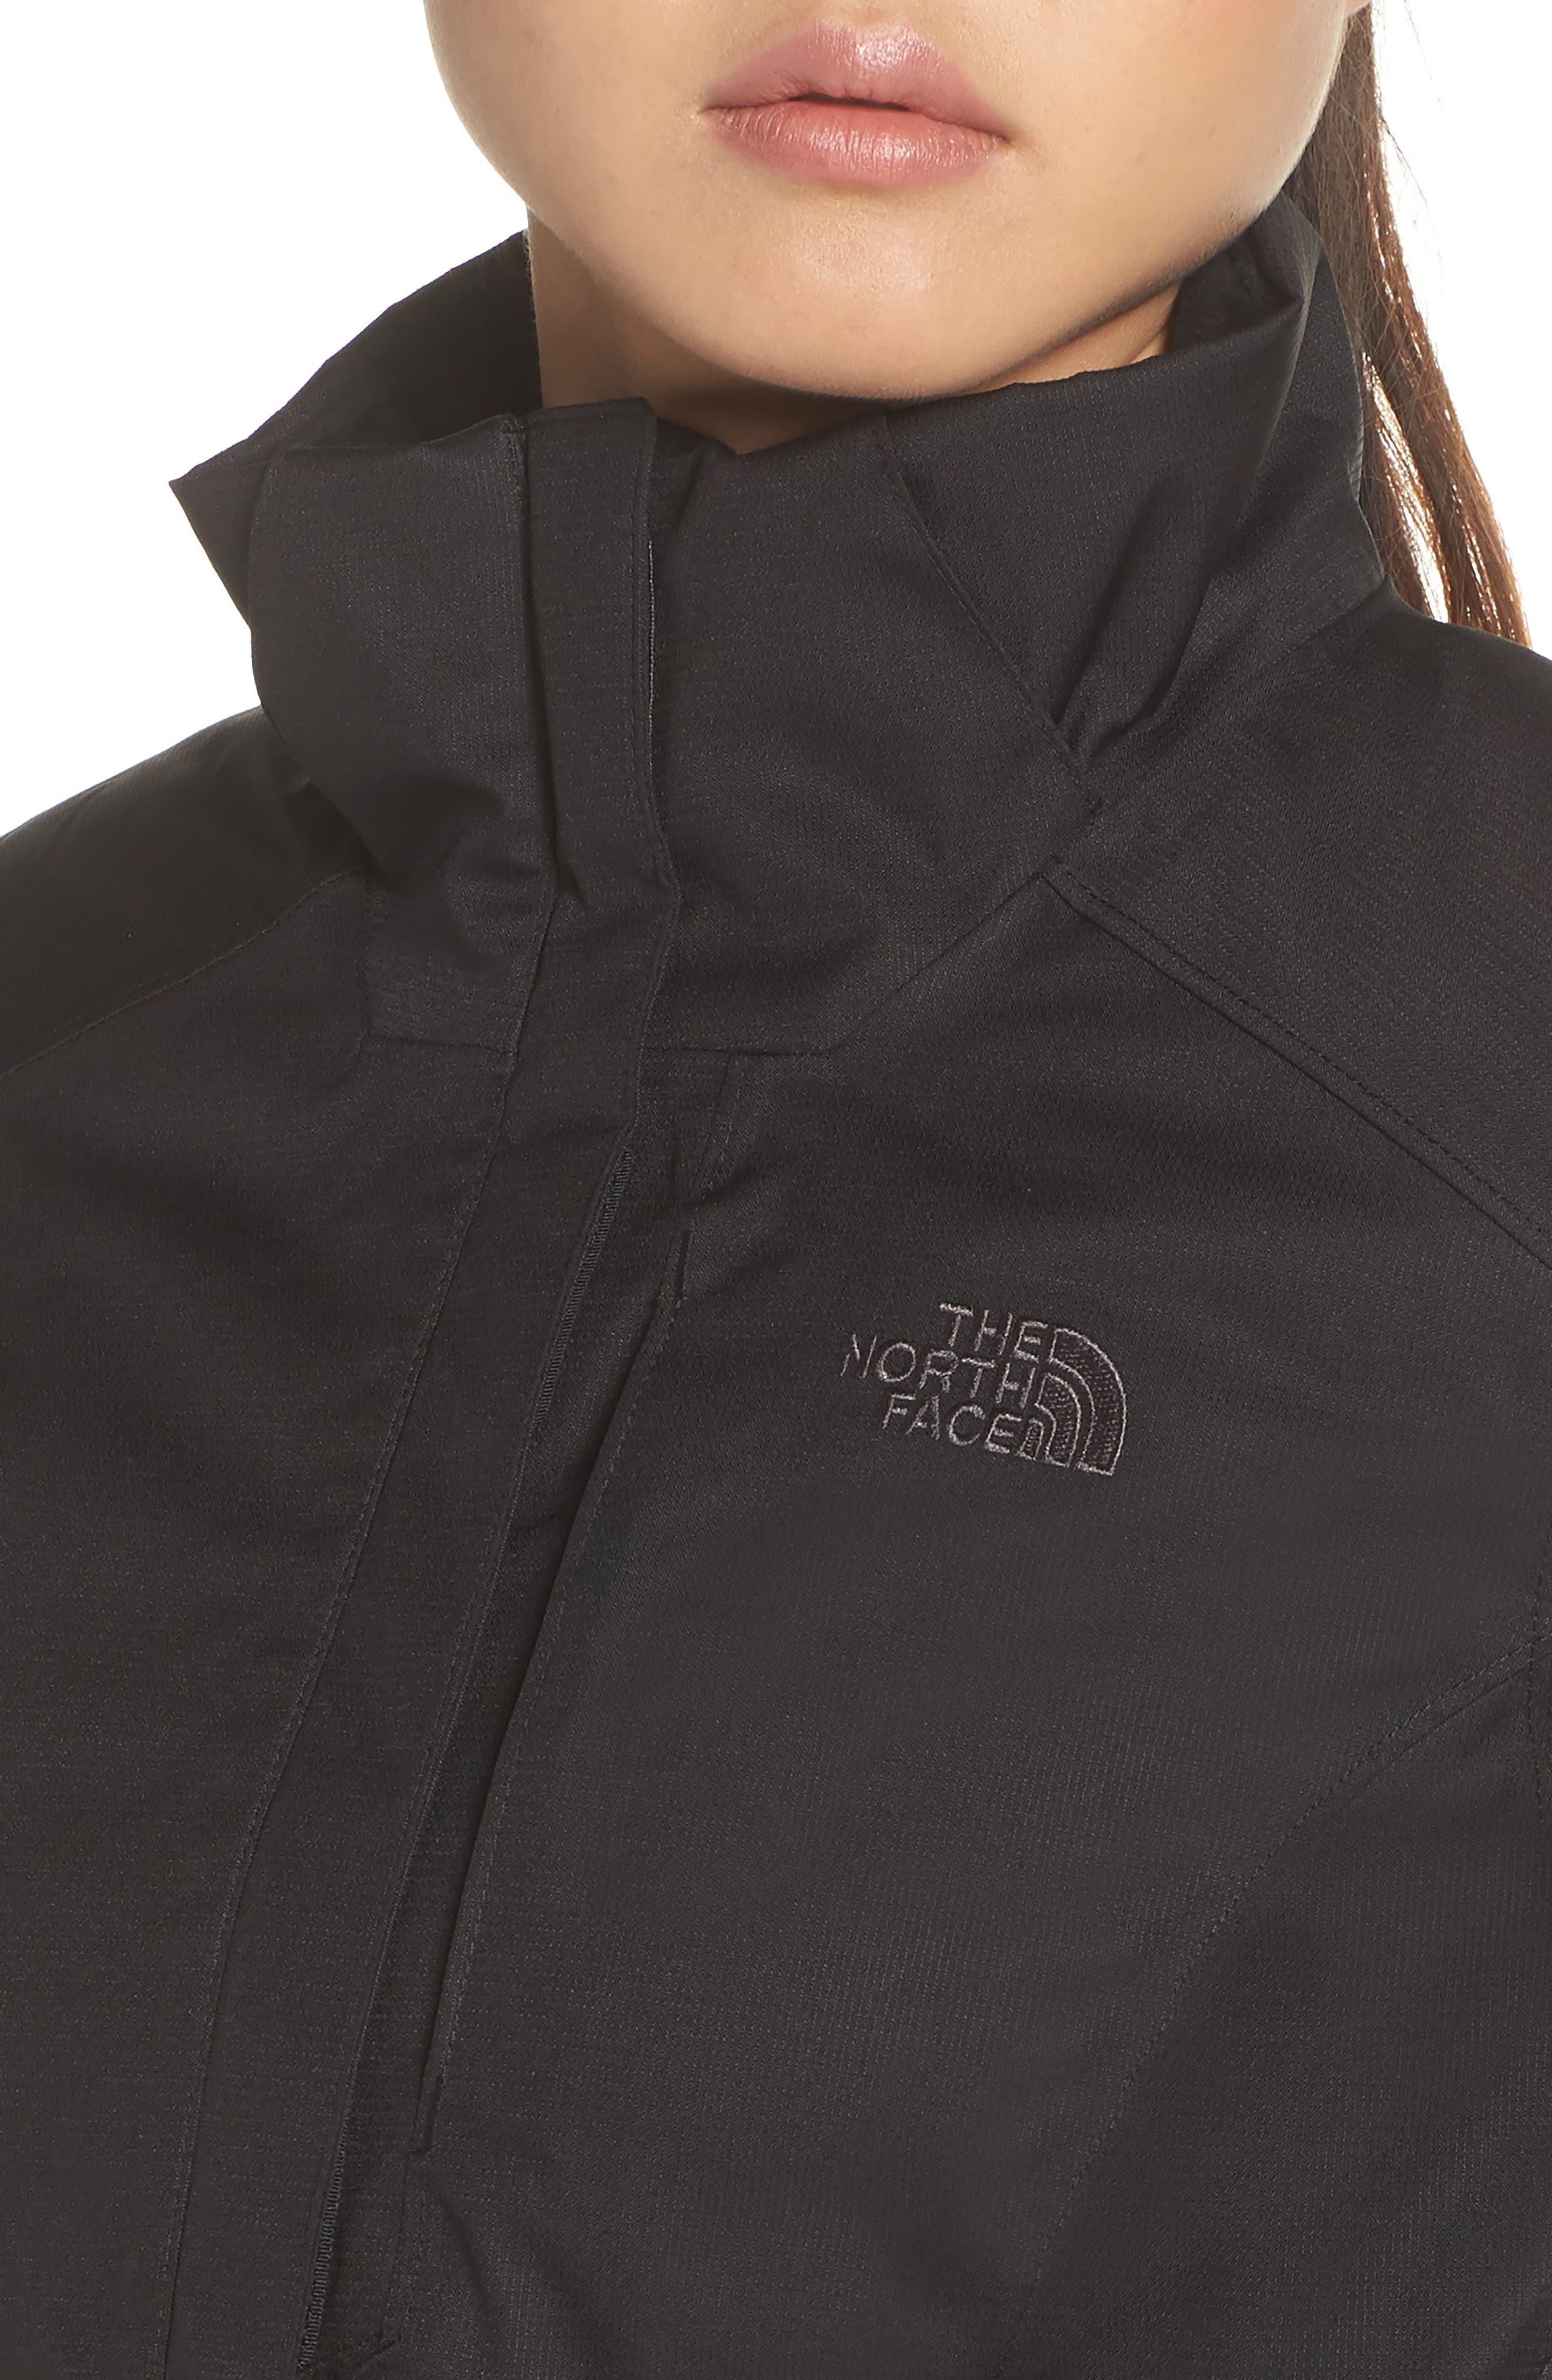 Inlux 2.0 Standard Fit Hooded DryVent Jacket,                             Alternate thumbnail 4, color,                             TNF BLACK